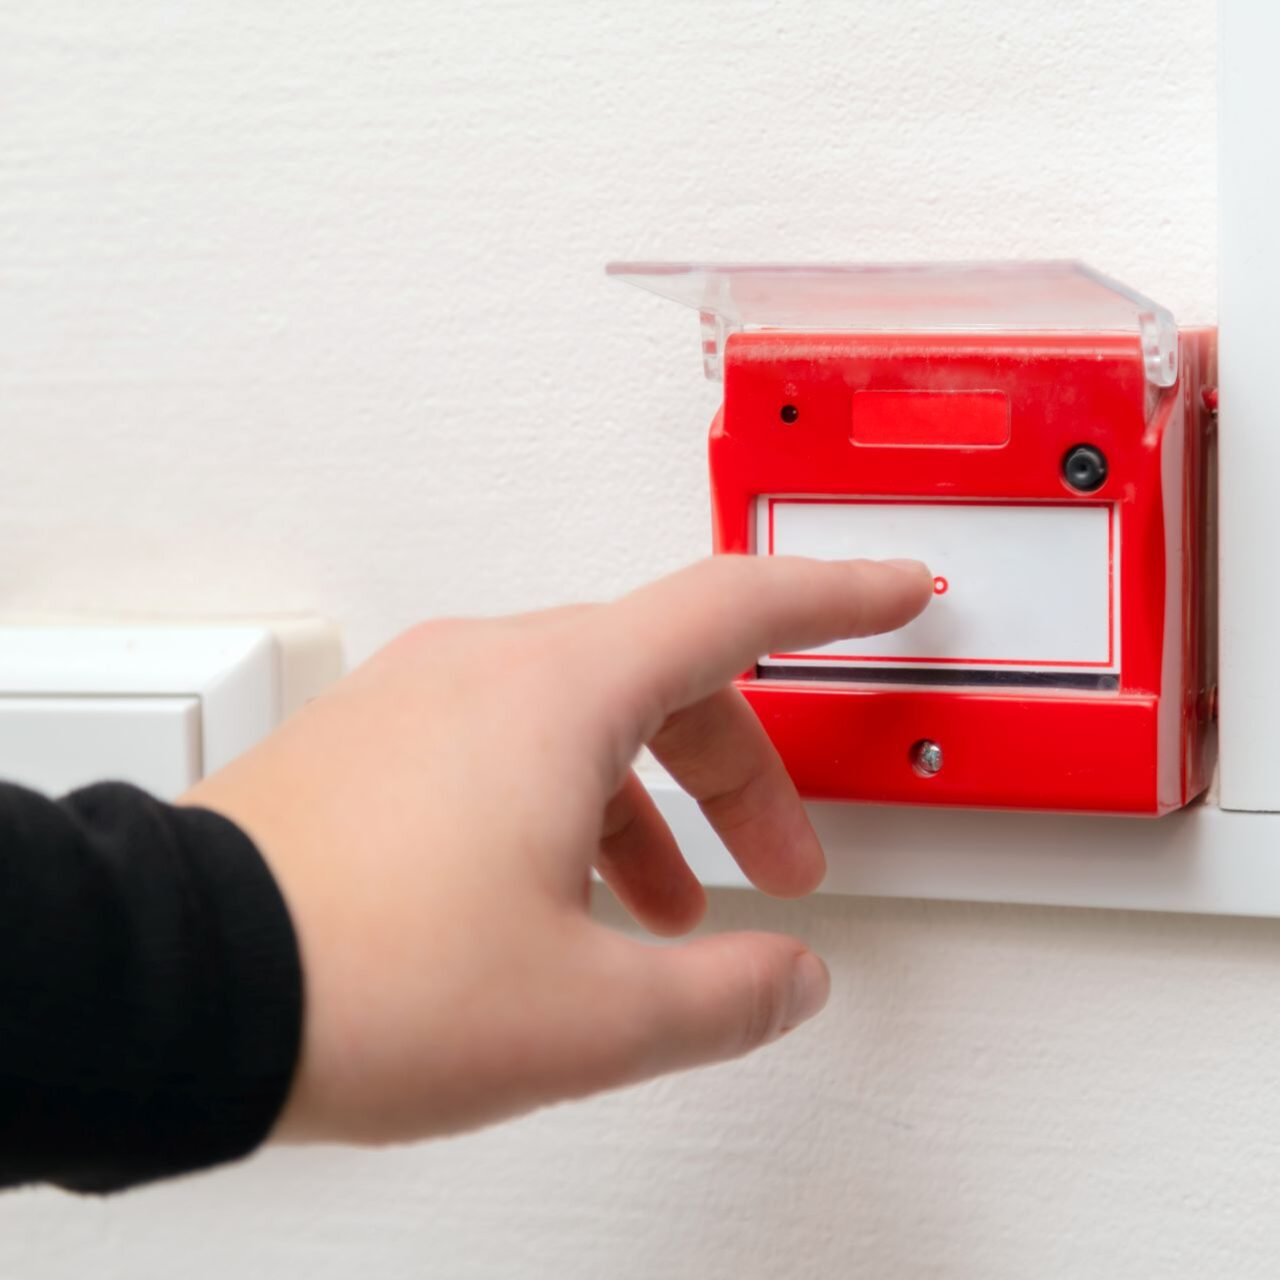 Hand pressing fire alarm button at school or business office. Close up of protection console against flame damage